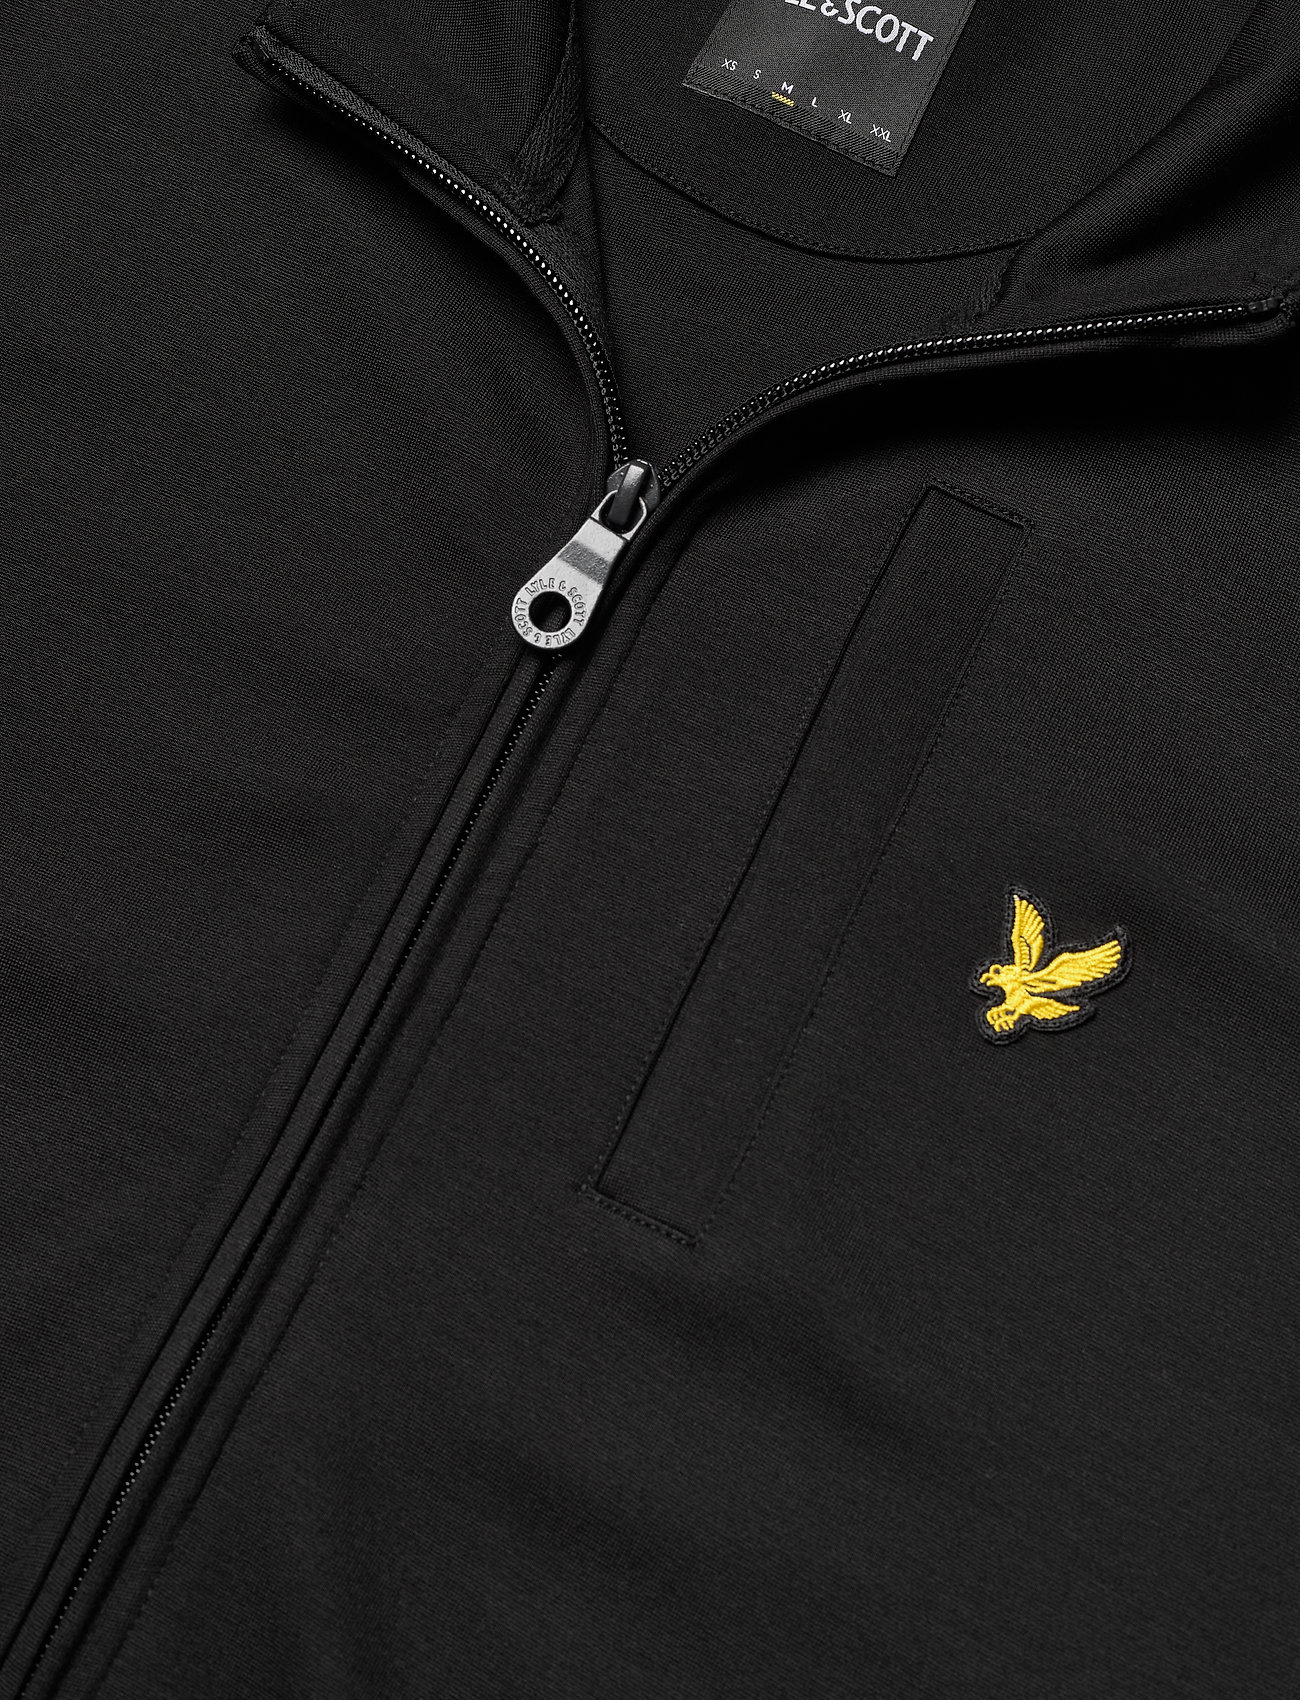 Smart Track Top (Jet Black) (63 €) - Lyle & Scott zV8Or